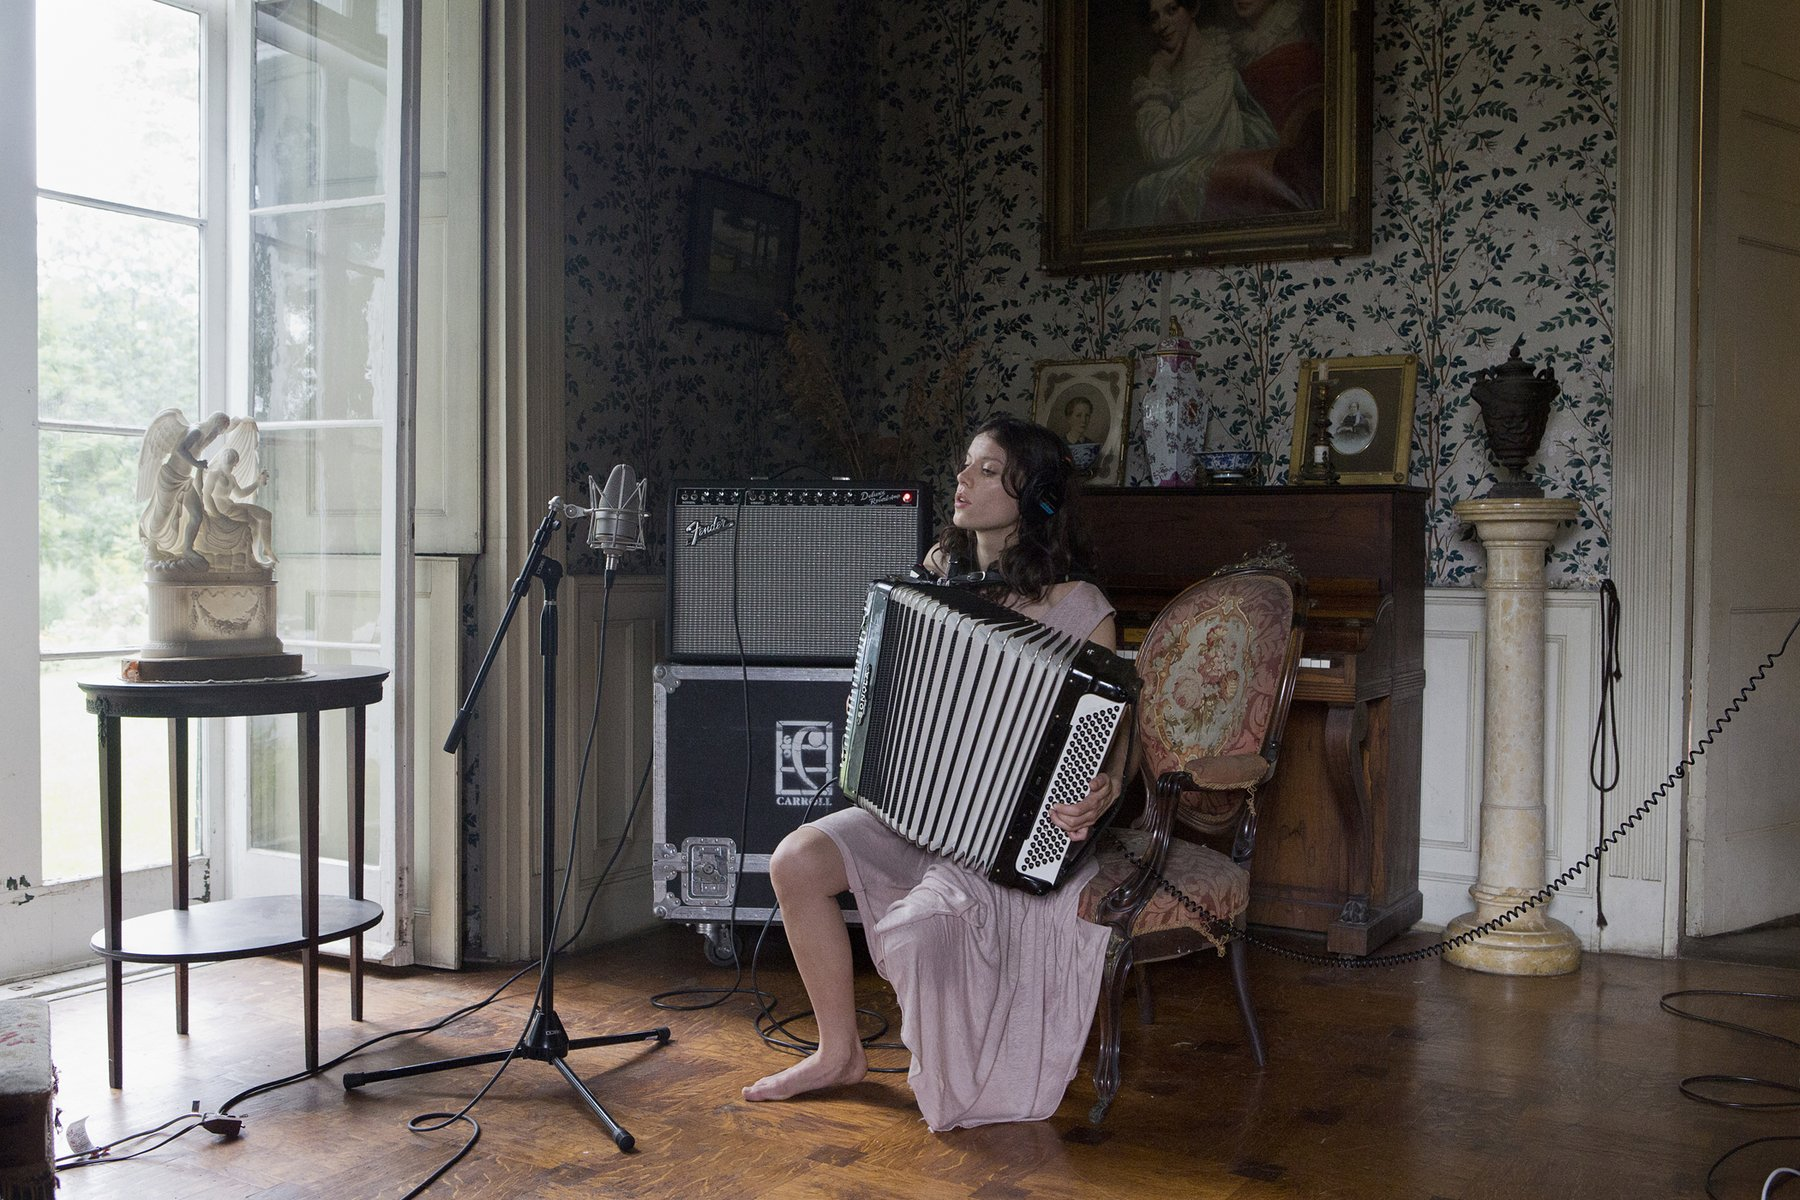 A woman in headphones sits alone playing an accordion in an ornately decorated but slightly ramshackle drawing room